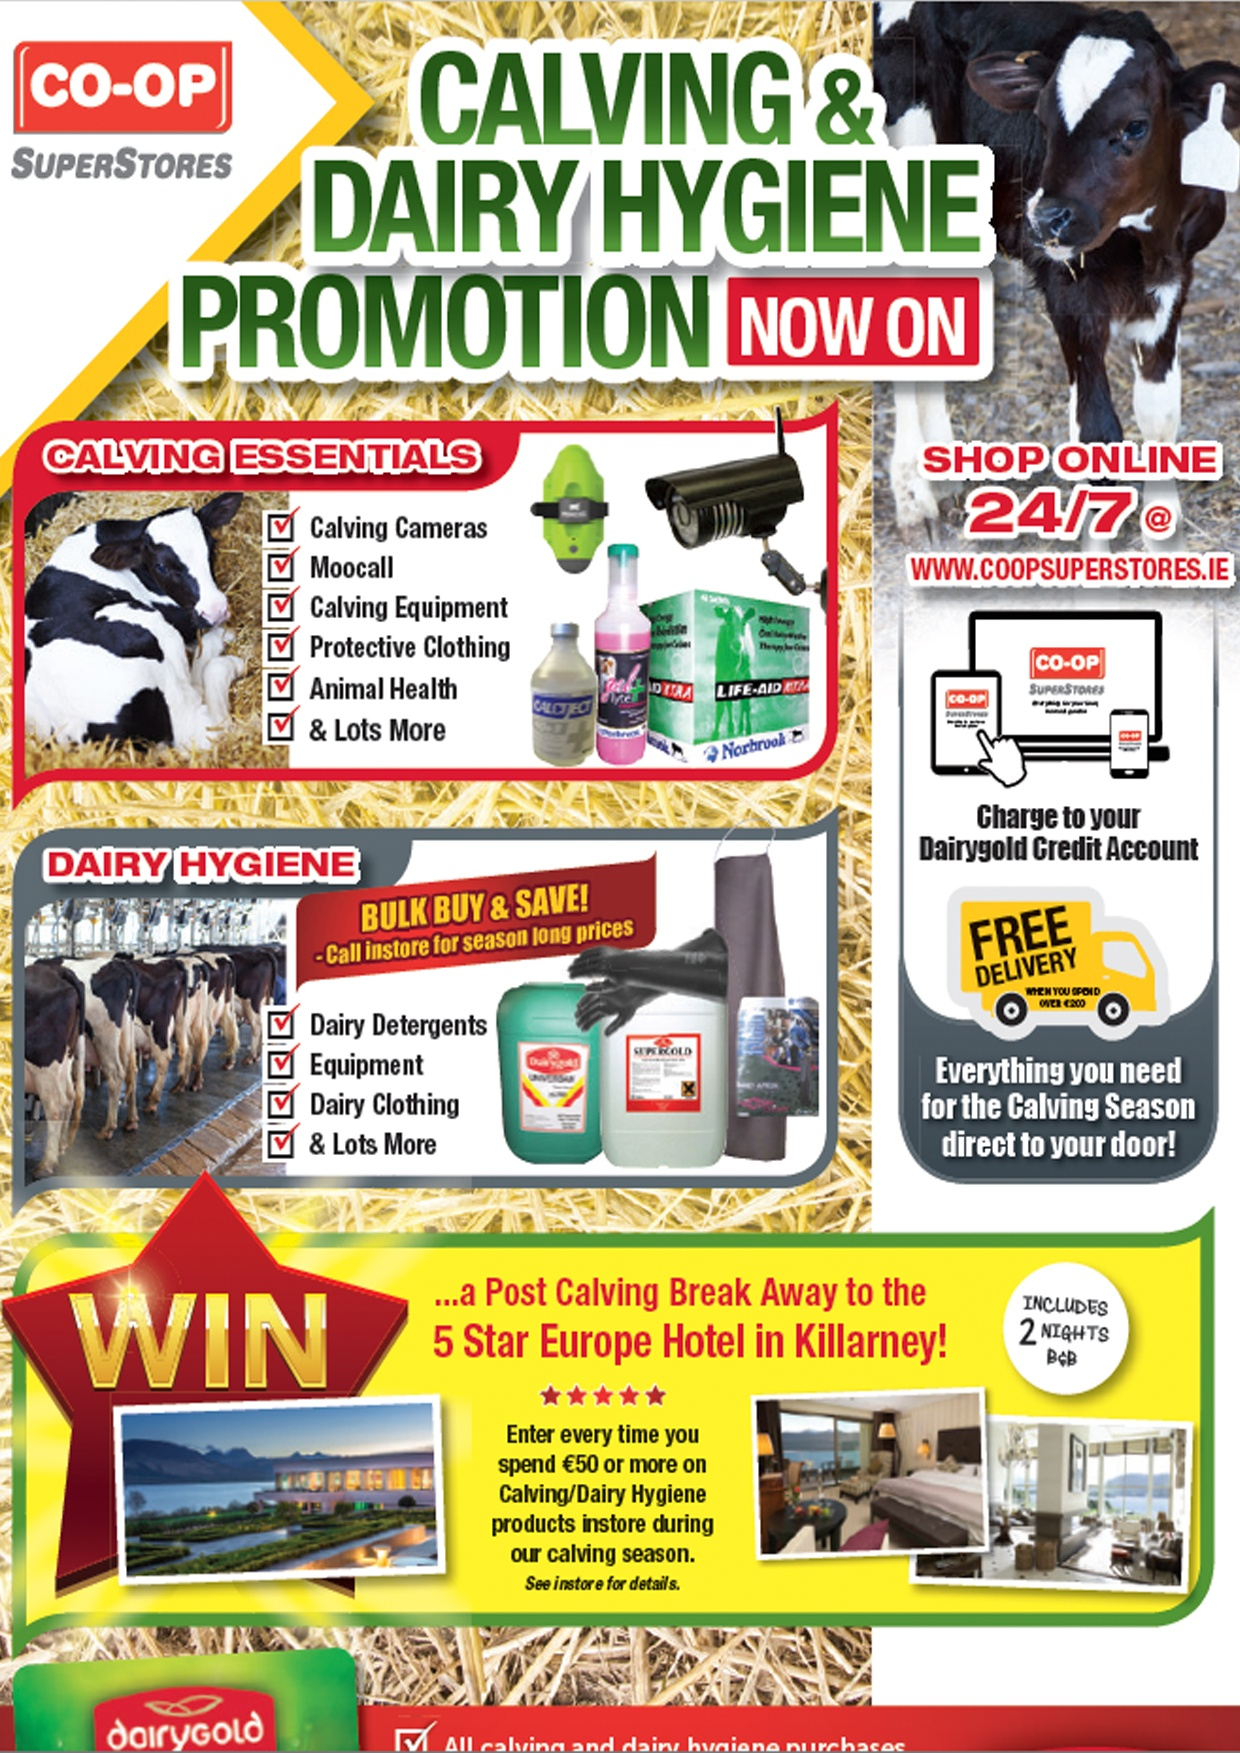 Calving & Dairy Hygiene Promotion 2017